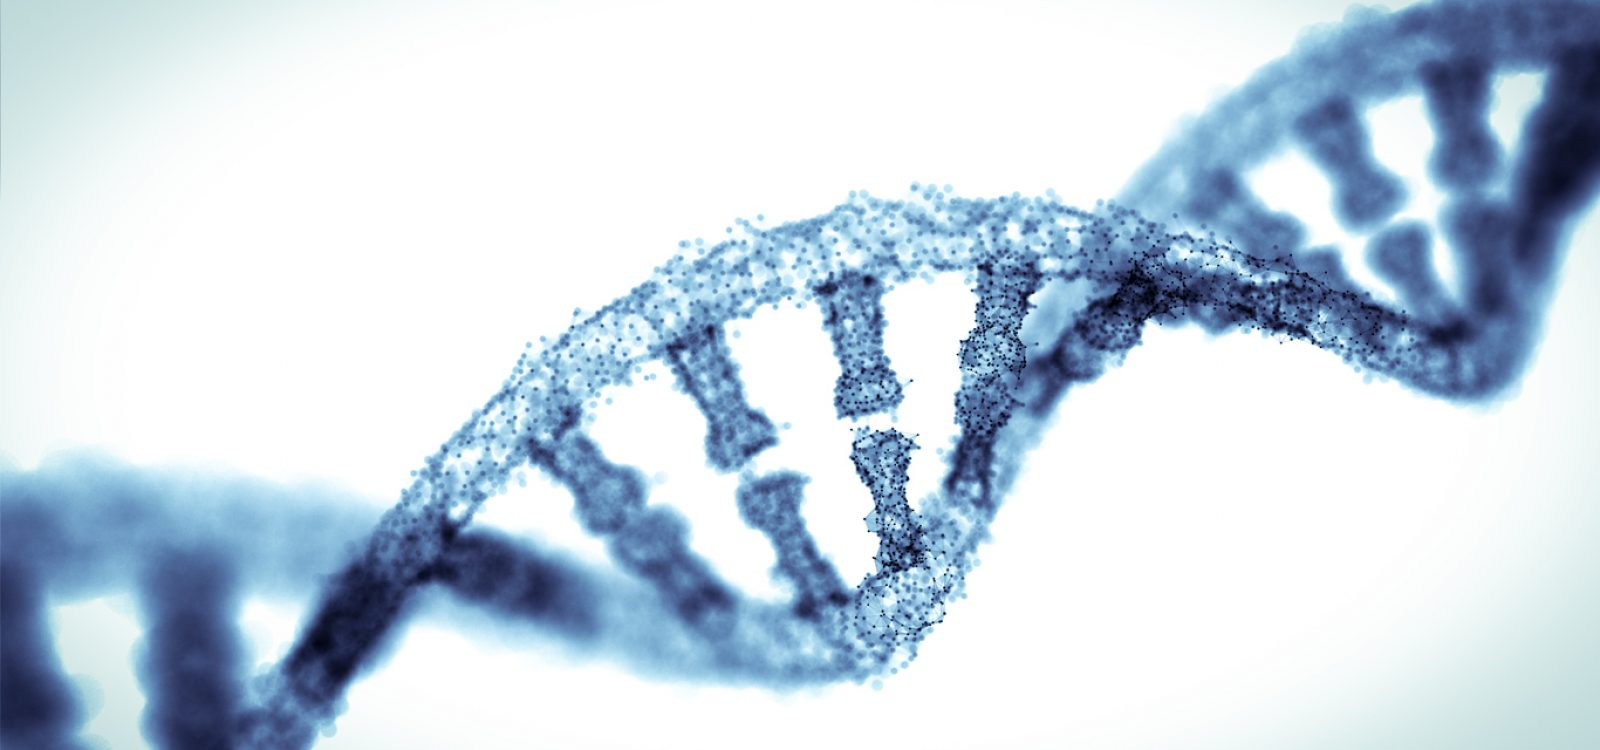 Thinking about life insurance through a genetic lens